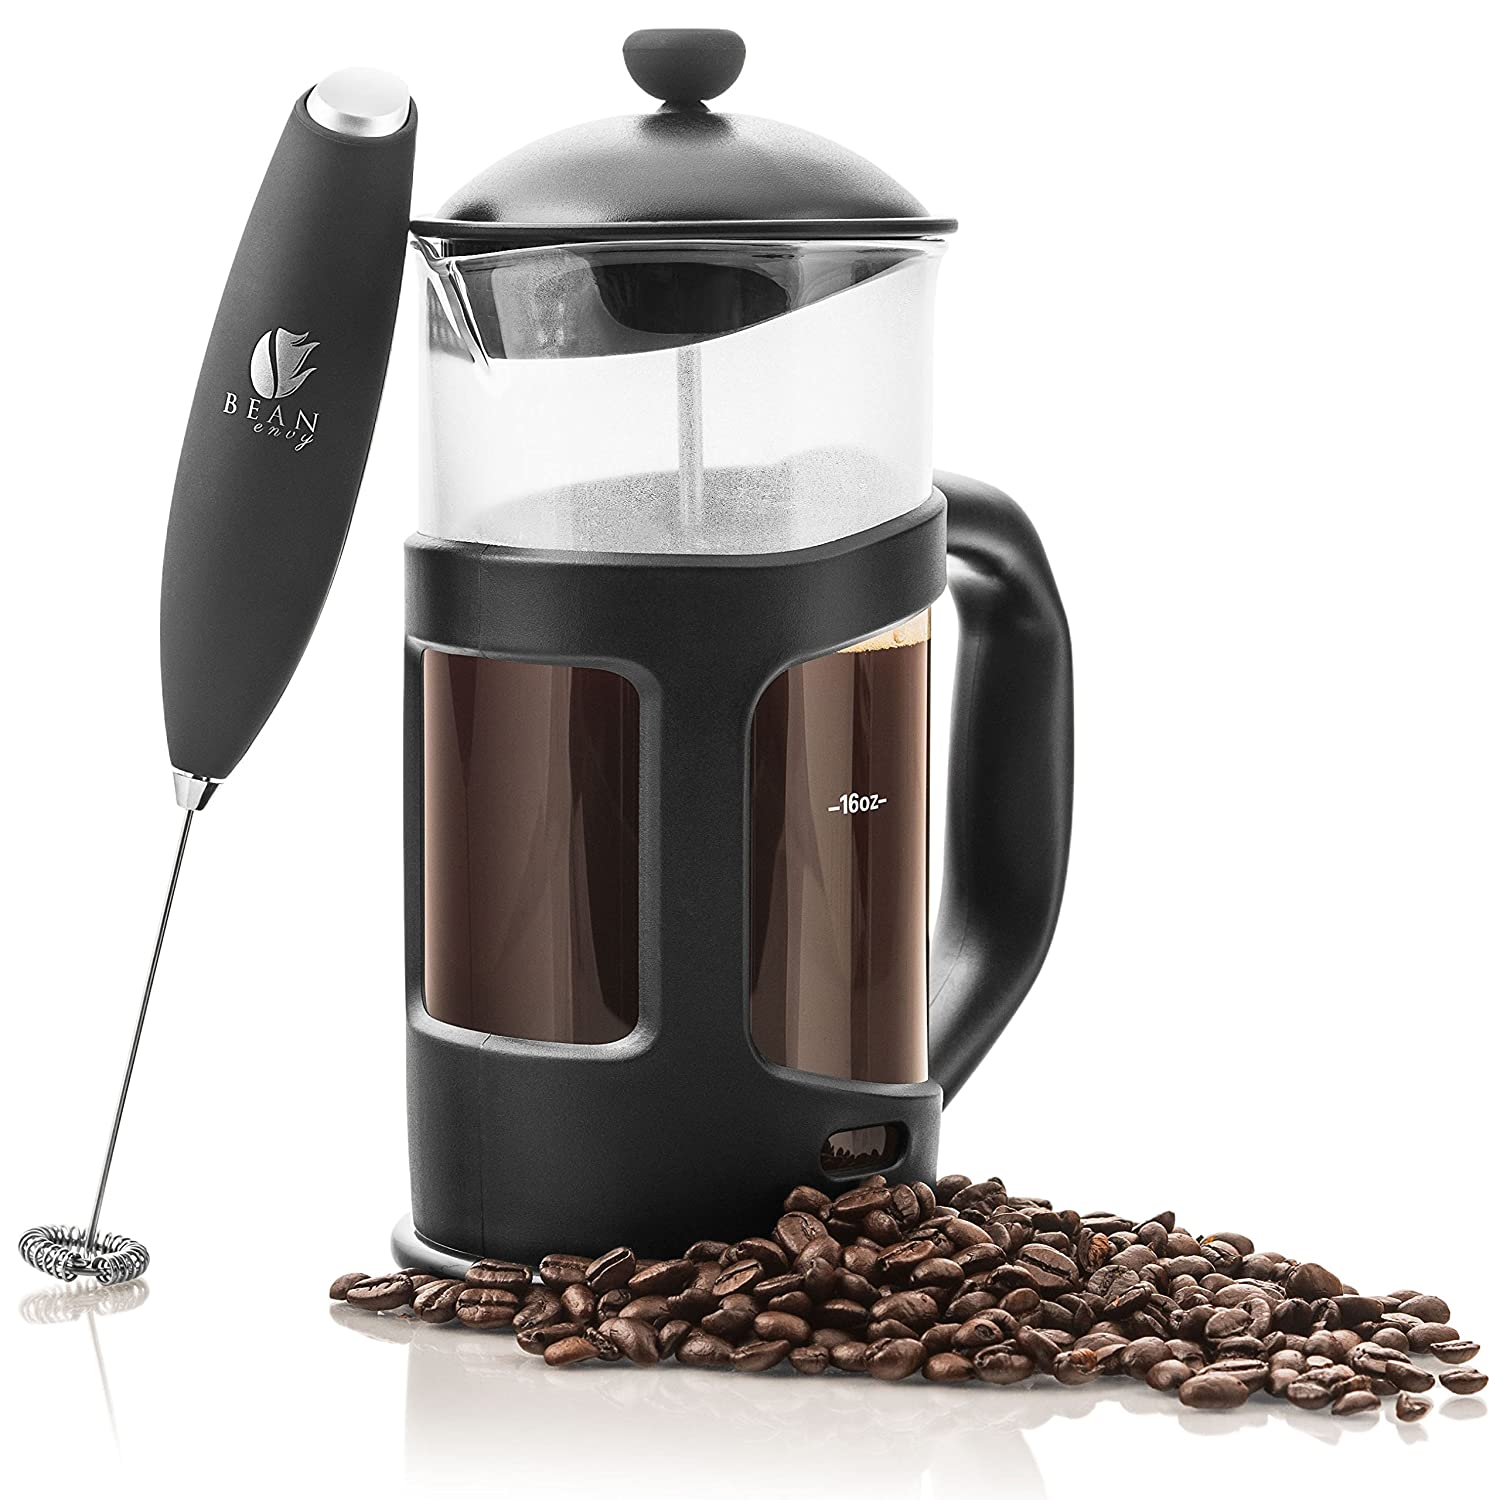 Bed bath beyond french press - Amazon Com Bean Envy 34 Oz French Press Coffee Espresso And Tea Maker Premium Bundle Includes Electric Milk Frother Best Press For 1 3